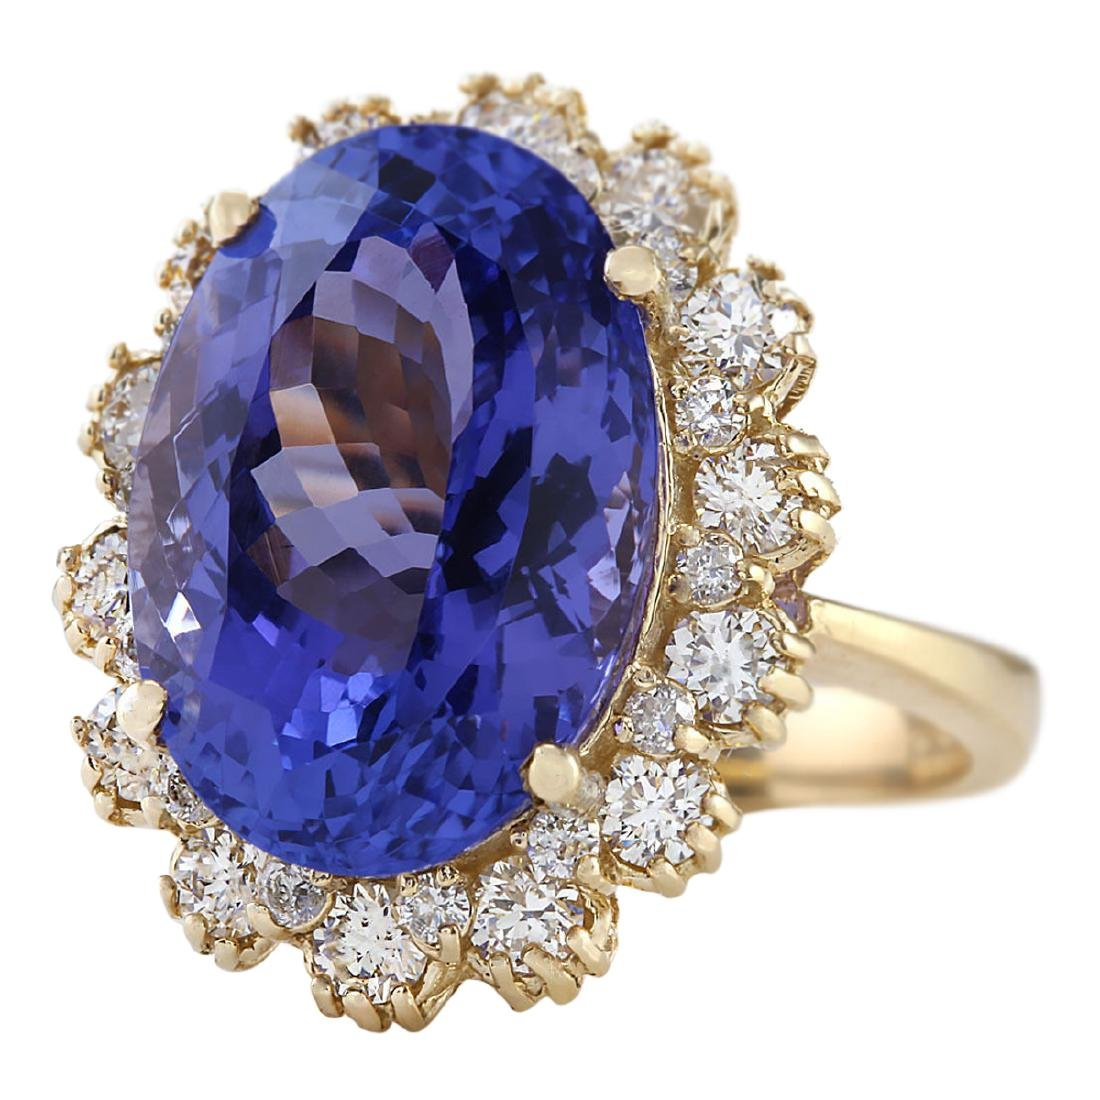 12.38 CTW Natural Tanzanite And Diamond Ring In 18K - 2